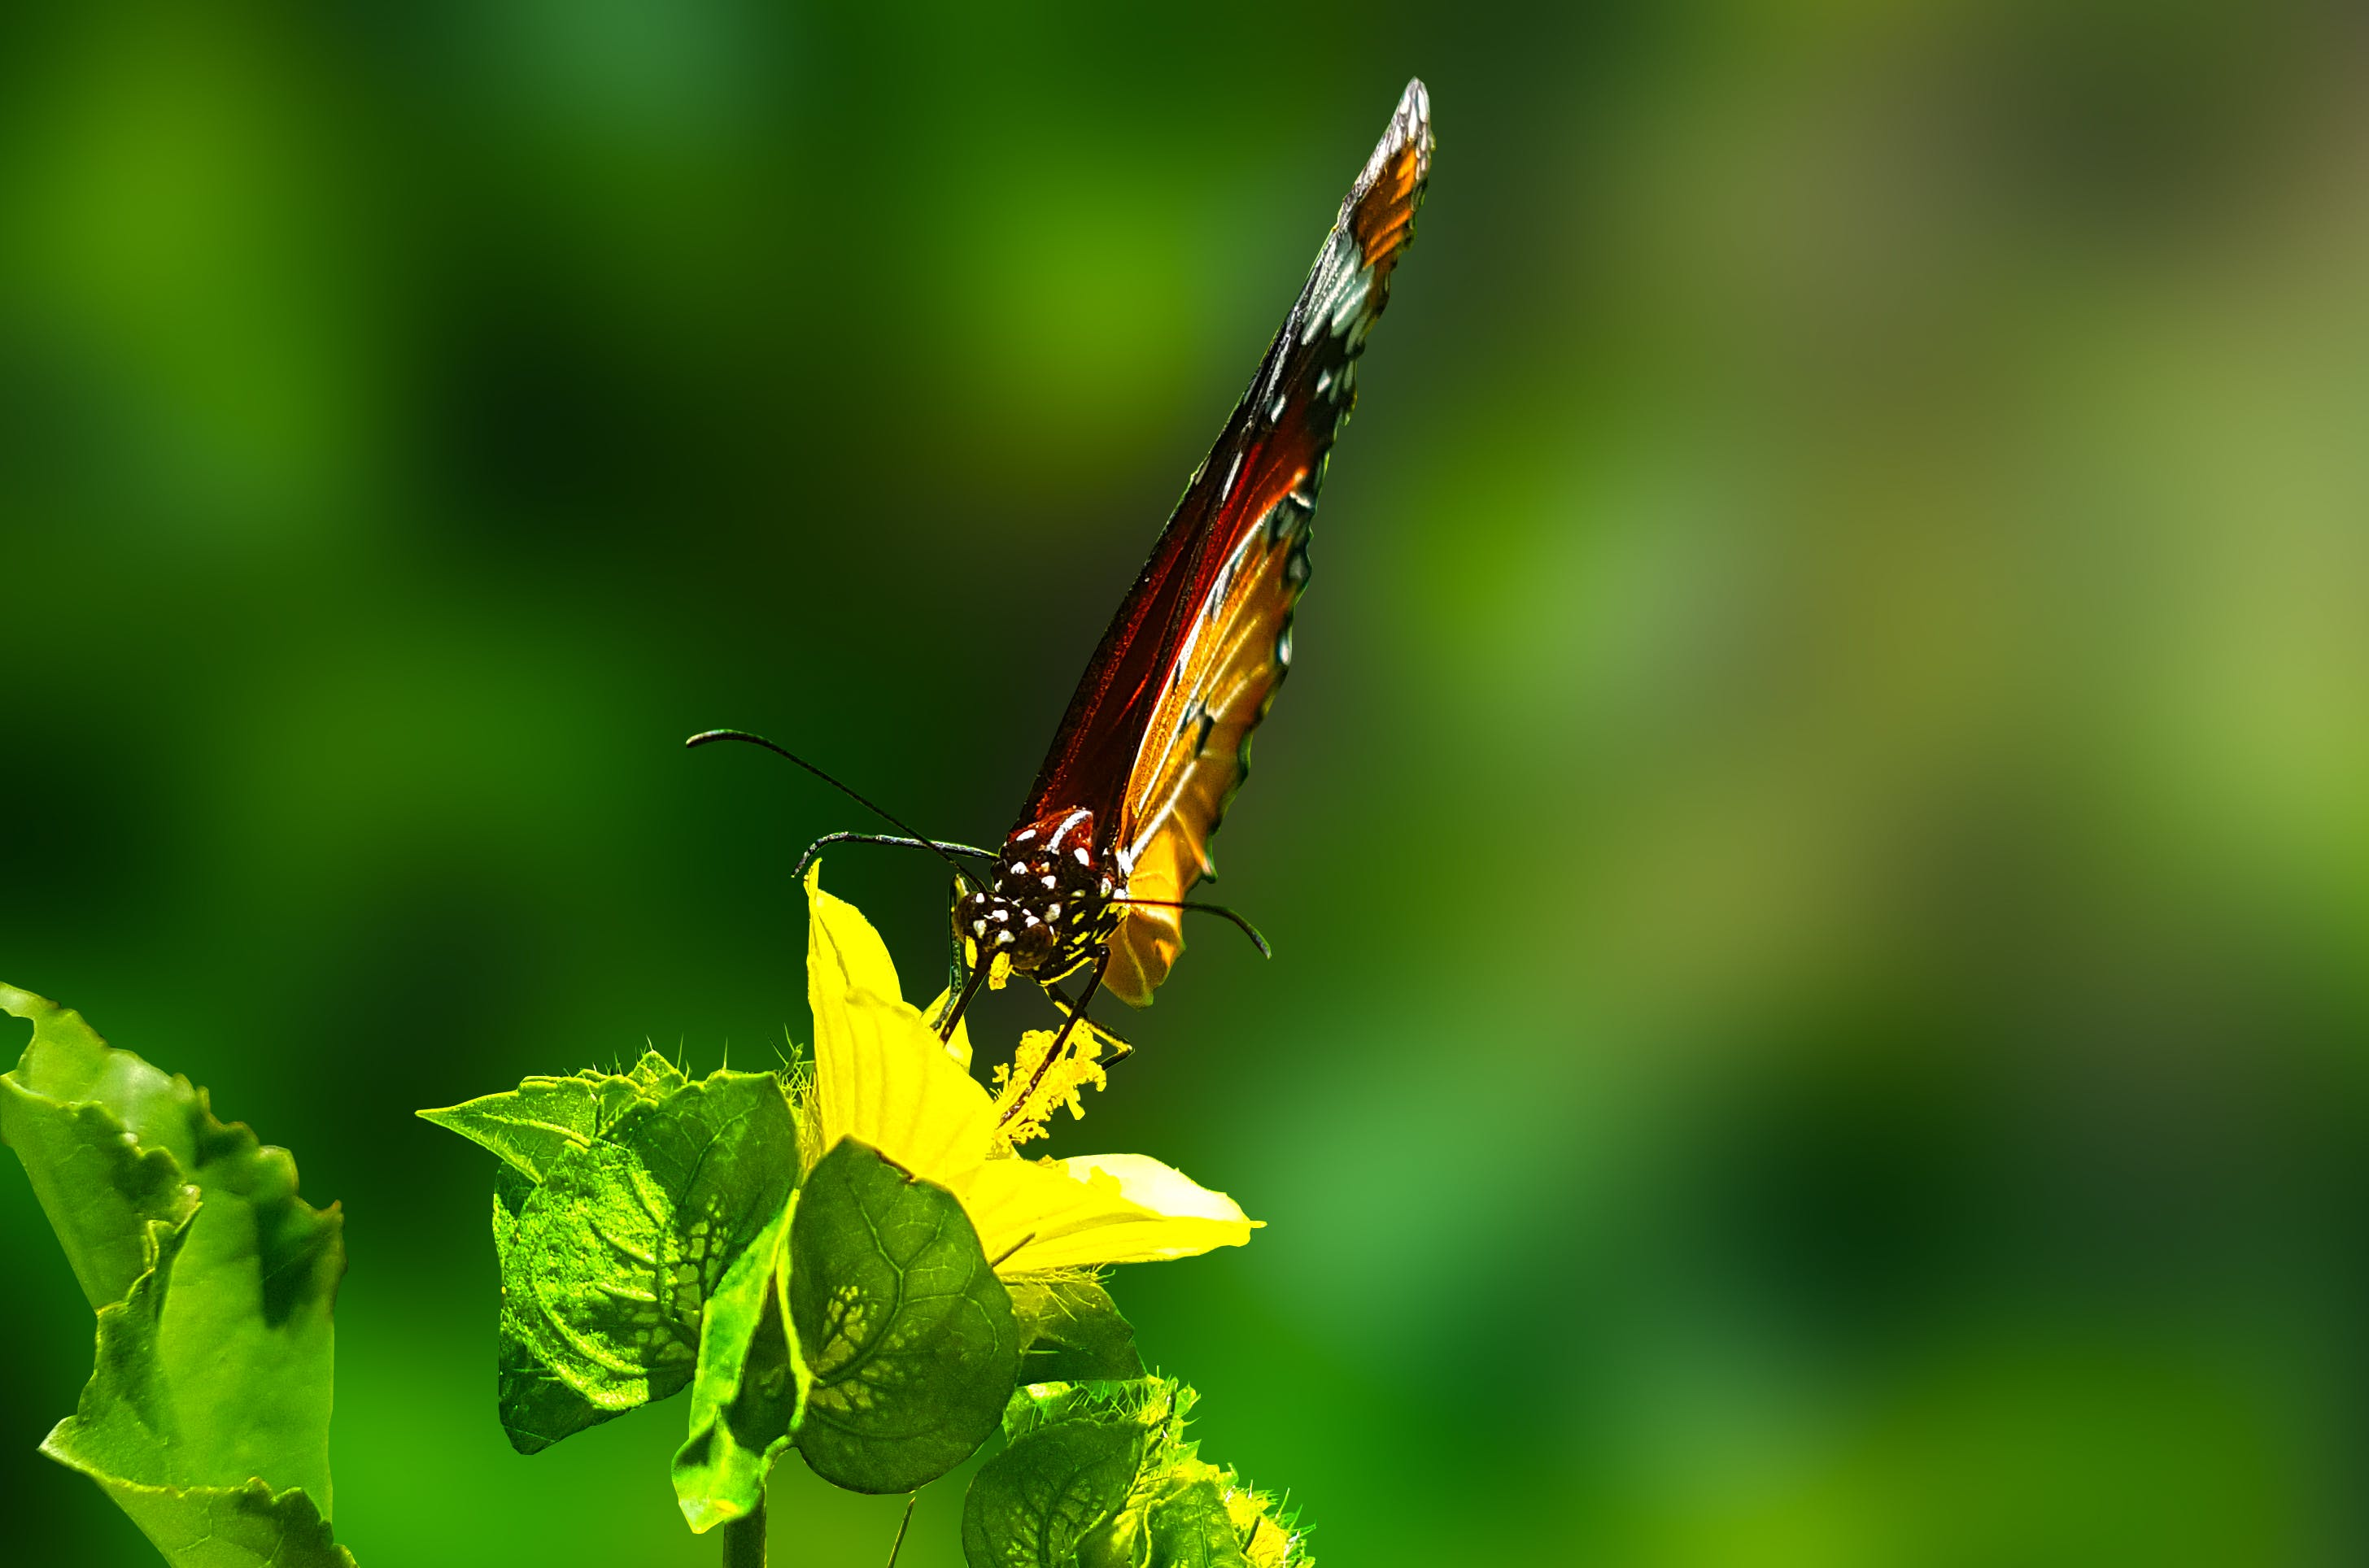 Brown Butterfly Perched on Green Leaf Plant in Closeup Photography